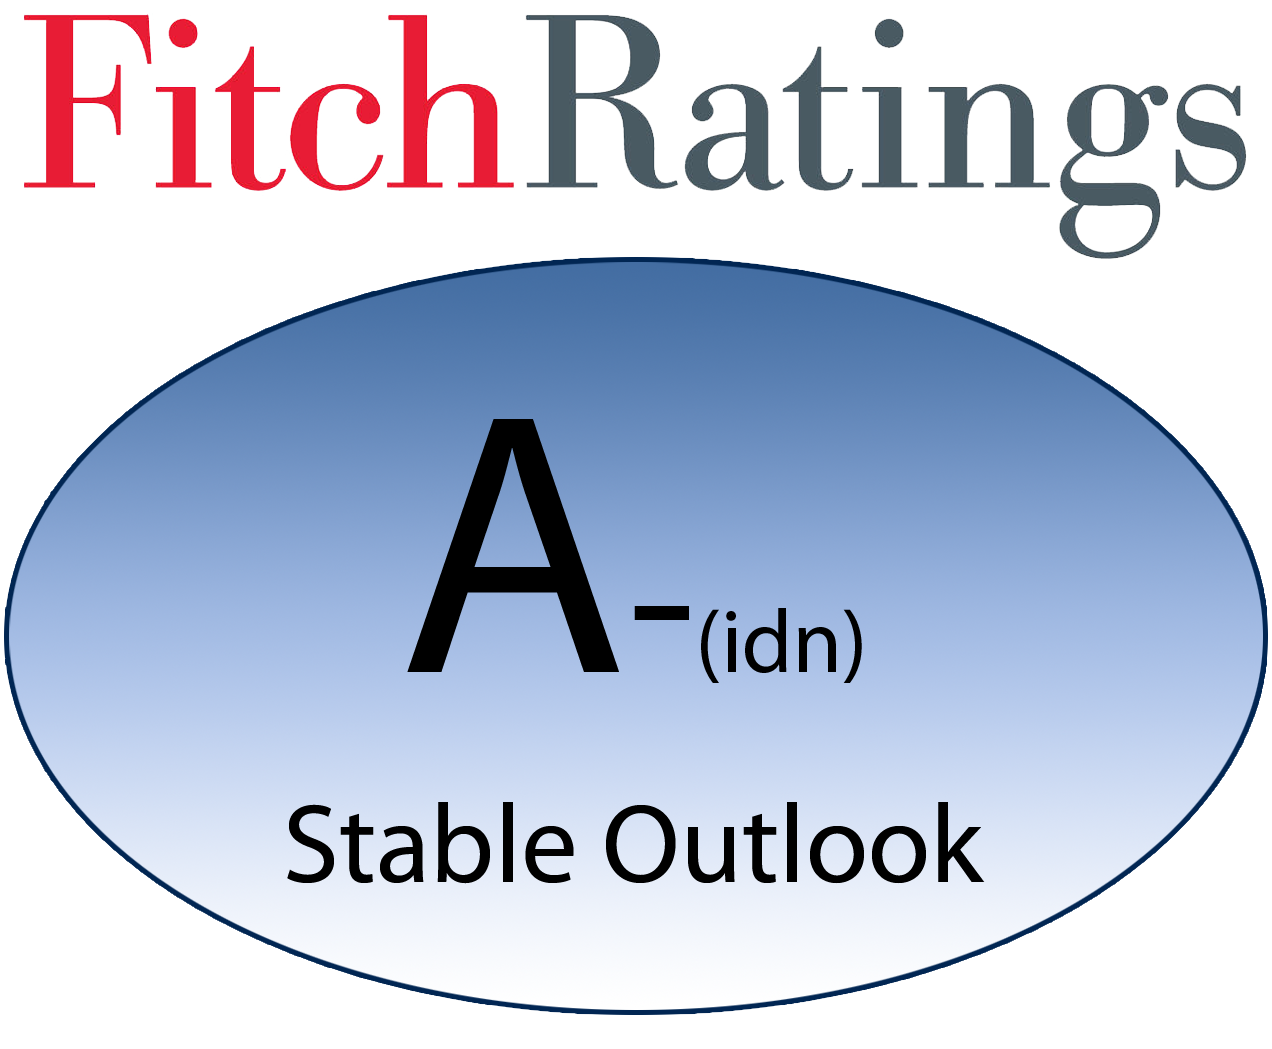 Fitch Upgrades MAIPARK to IFS 'A-(idn)'; Outlook Stable